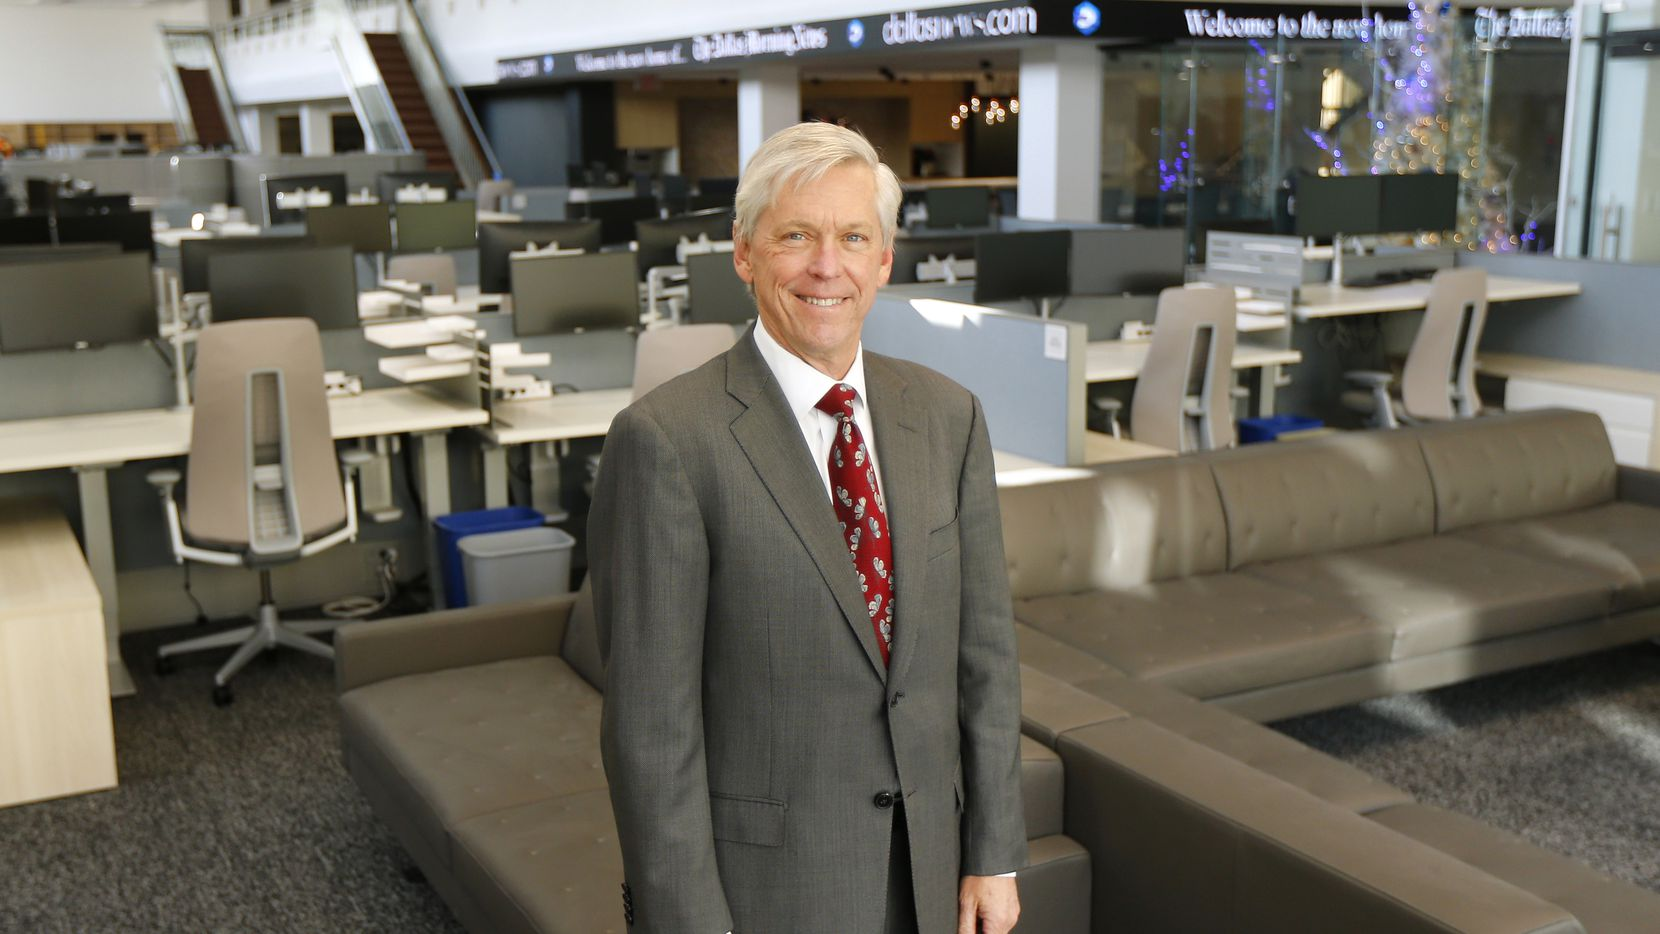 Jim Moroney, standing in The Dallas Morning News' new newsroom at the former Dallas Public Library on Commerce Street, stepped down in March as the newspaper's seventh publisher. On Thursday, he will relinquish the titles of chairman, president and chief executive of Dallas-based A. H. Belo Corporation, the news organization's parent.